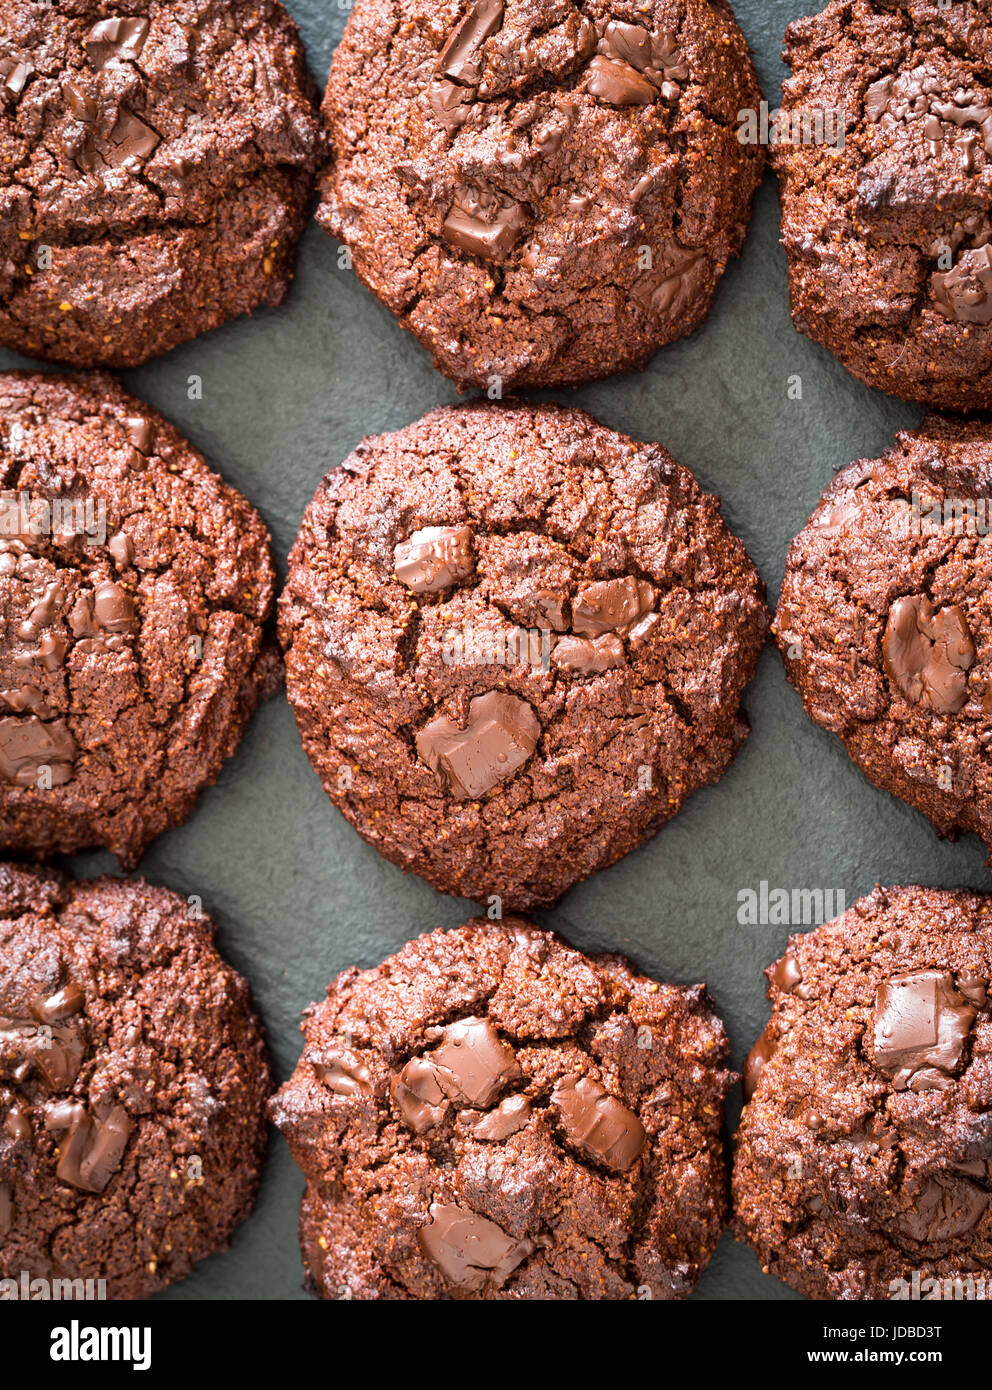 Grain free (gluten free) double chocolate cookies, view from the above. - Stock Image